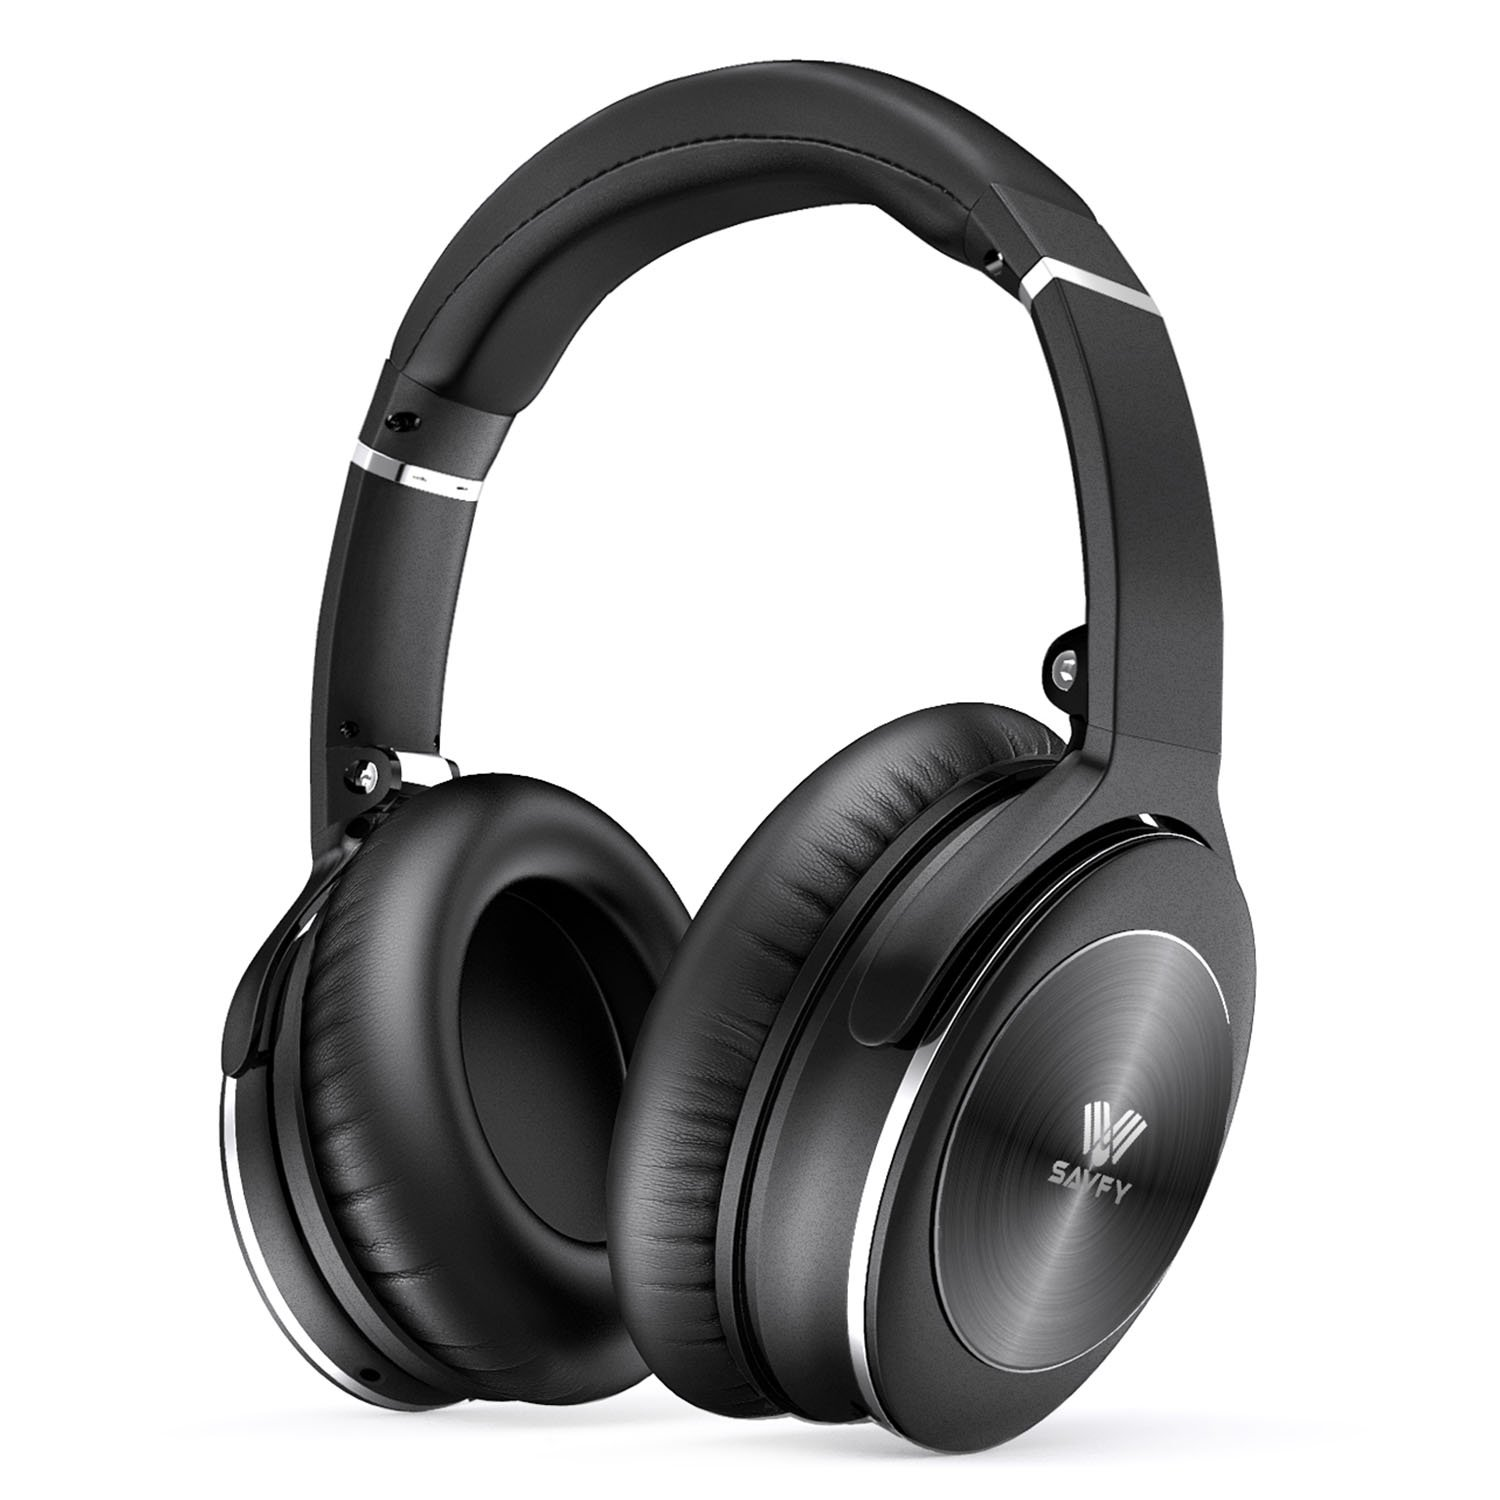 Savfy Active Noise Cancelling Bluetooth Headphones, Wireless Over-Ear Headphone with HiFi, Comfort Protein Ear Pads, Built-in Microphone and Wired Mode for Travel Work Gaming PC, TV, Phone Black